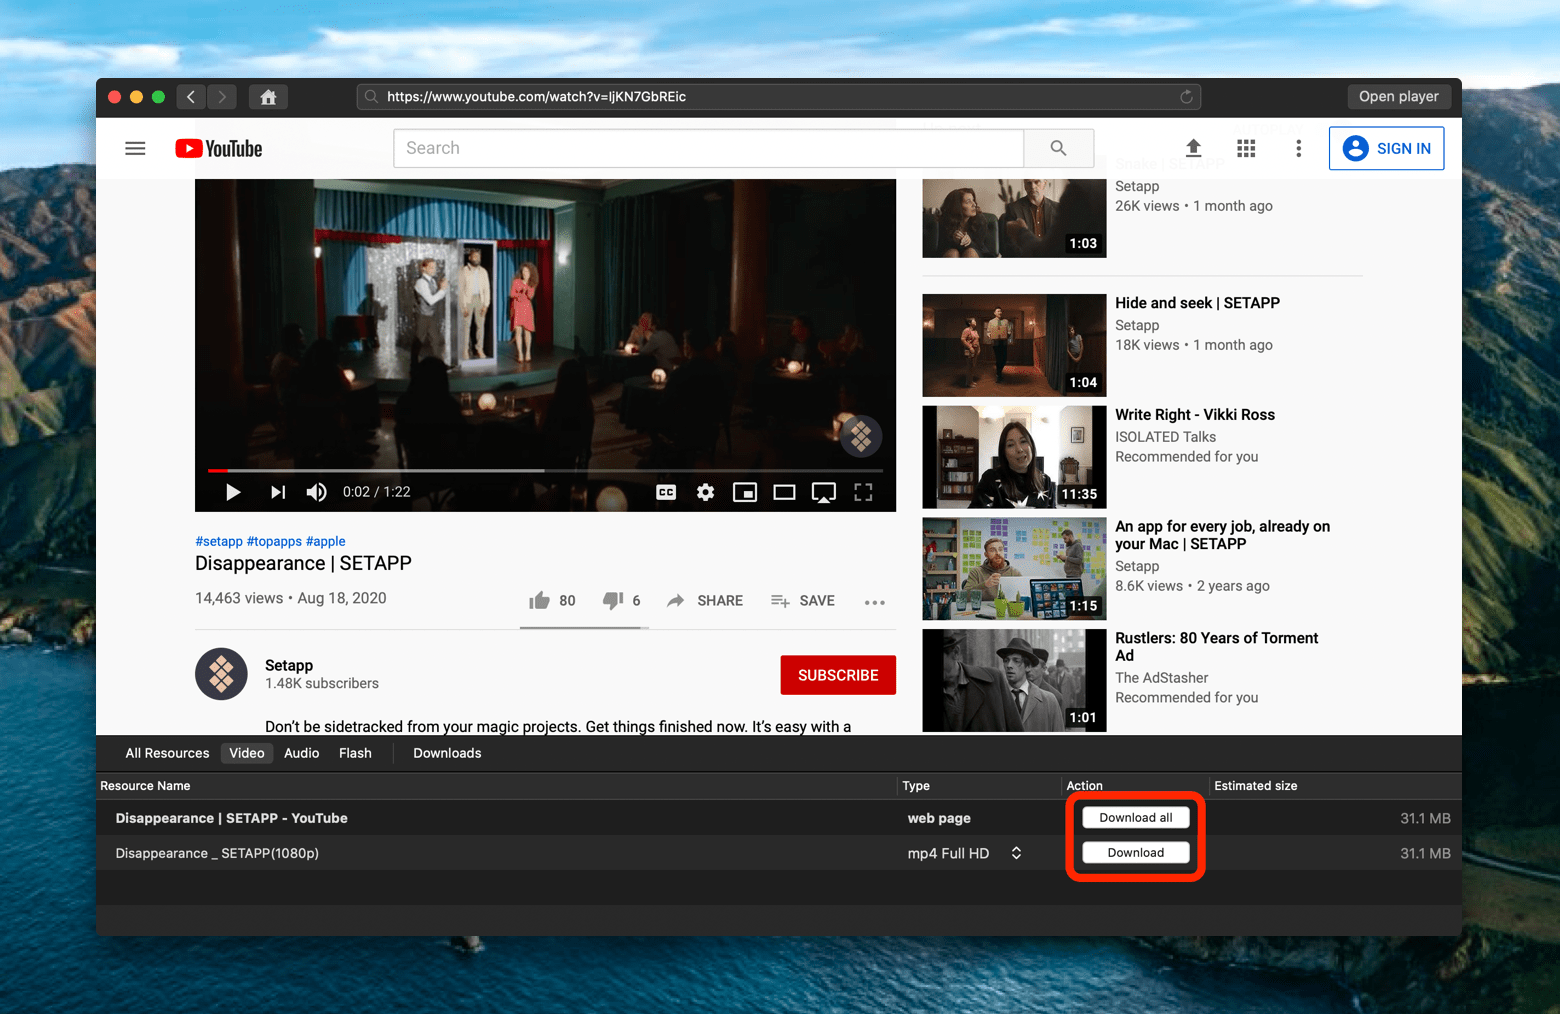 download videos from YouTube via player